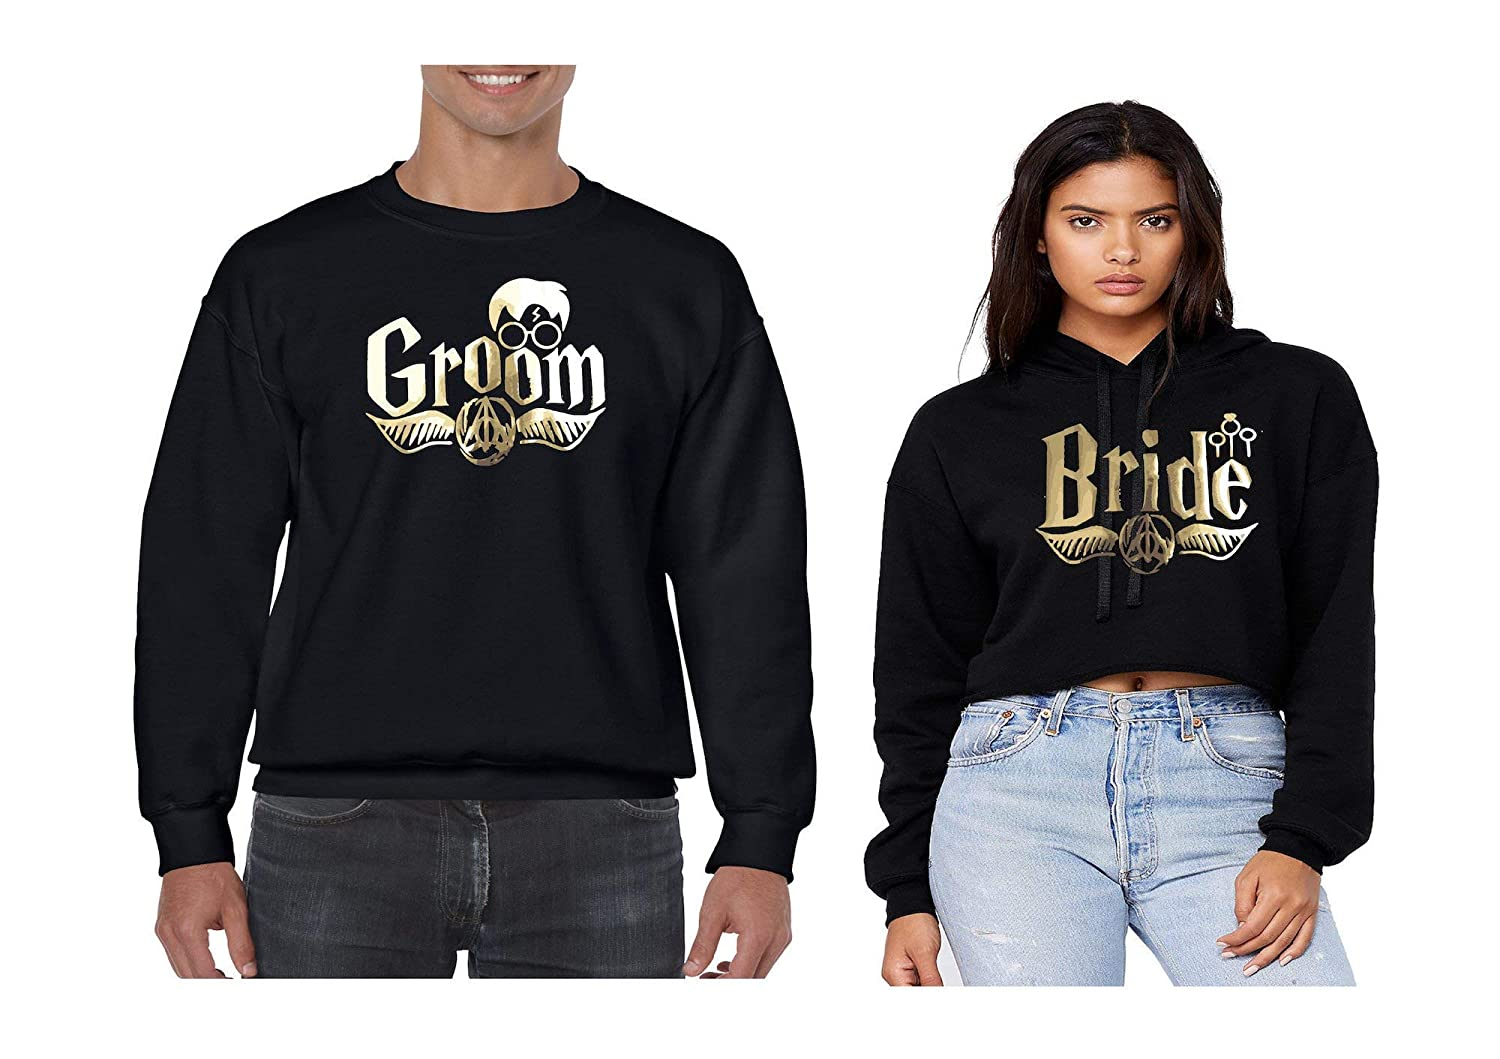 His and Hers Matching Black Sweater and Crop top Groom and Bride Couples Unisex Crewneck Sweater and Croptop Set